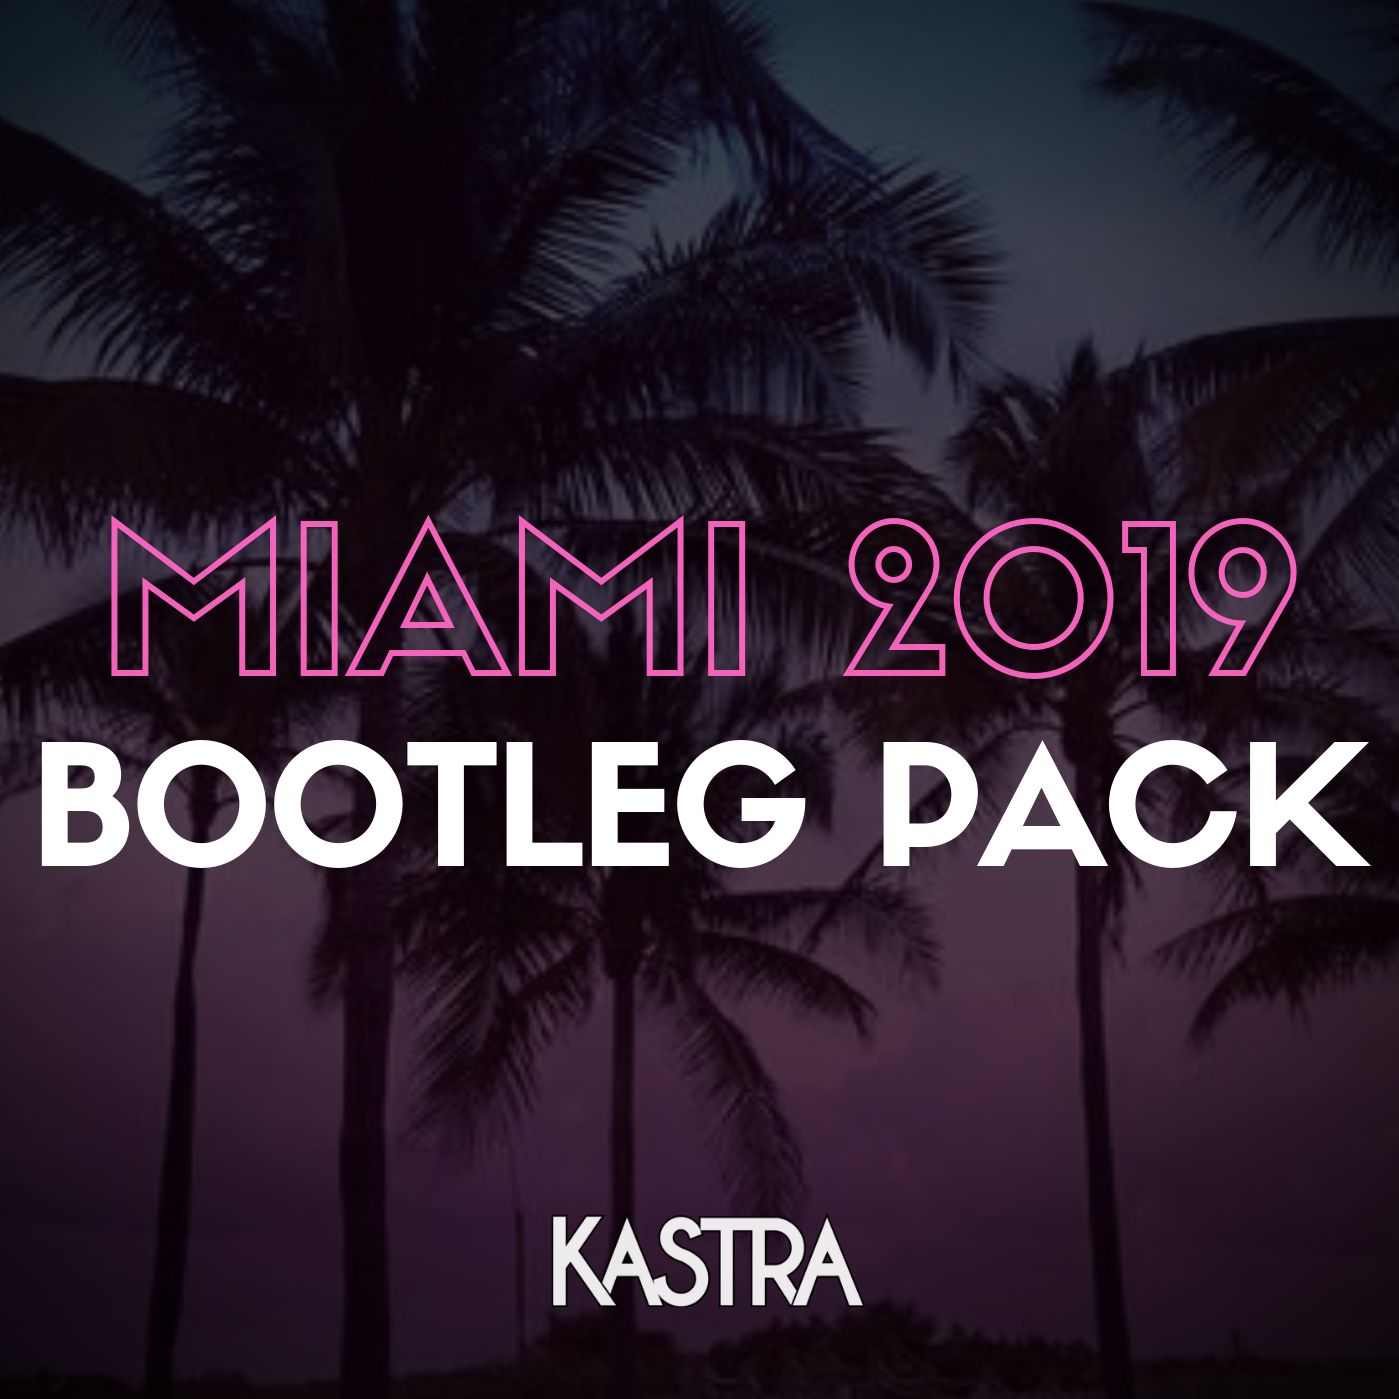 MMW 2019 Bootleg Pack by Kastra | Free Download on Hypeddit